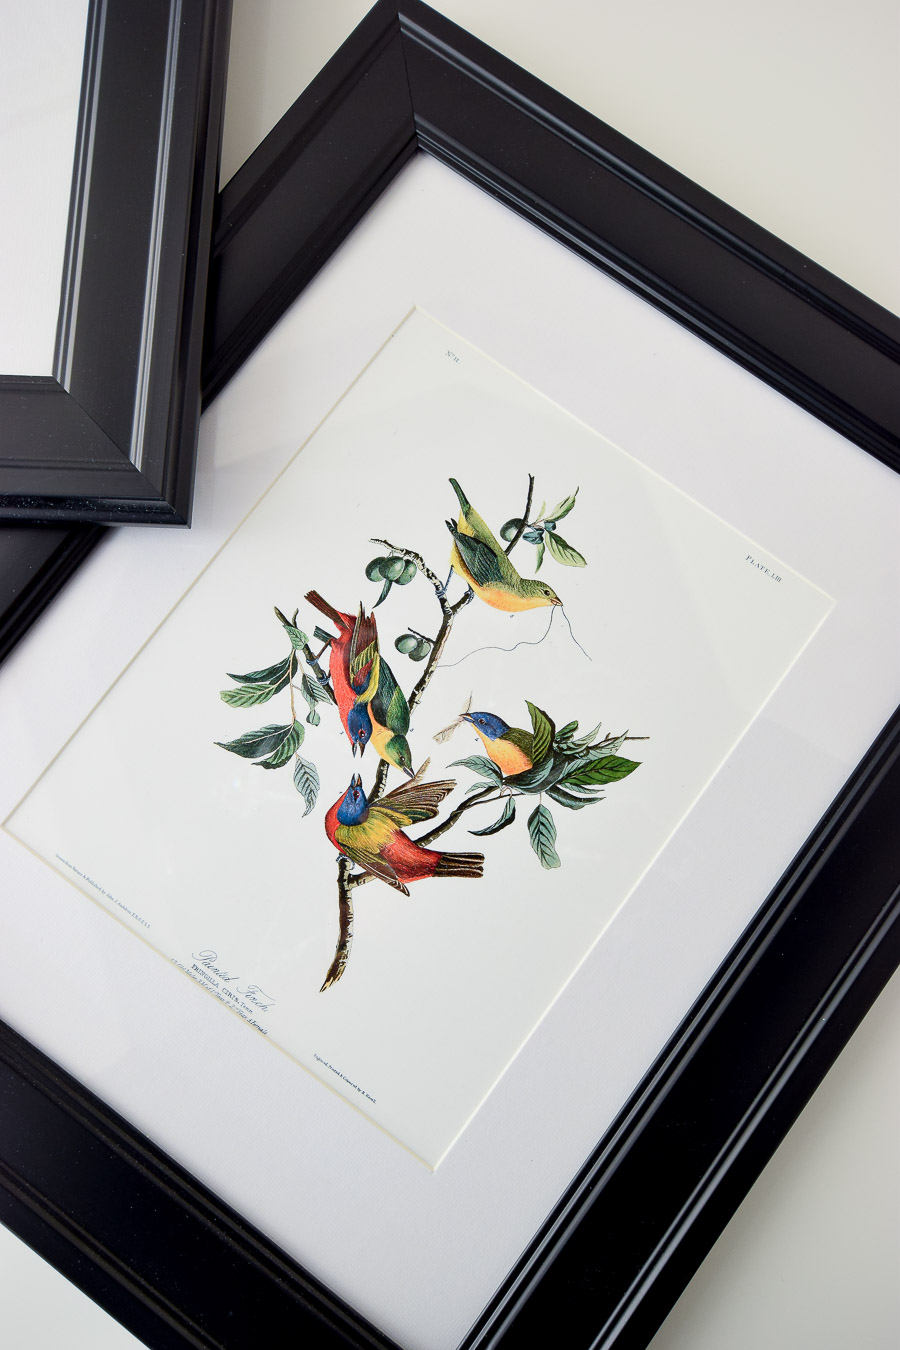 Free audubon botanical bird printables that look gorgeous when framed as wall art.